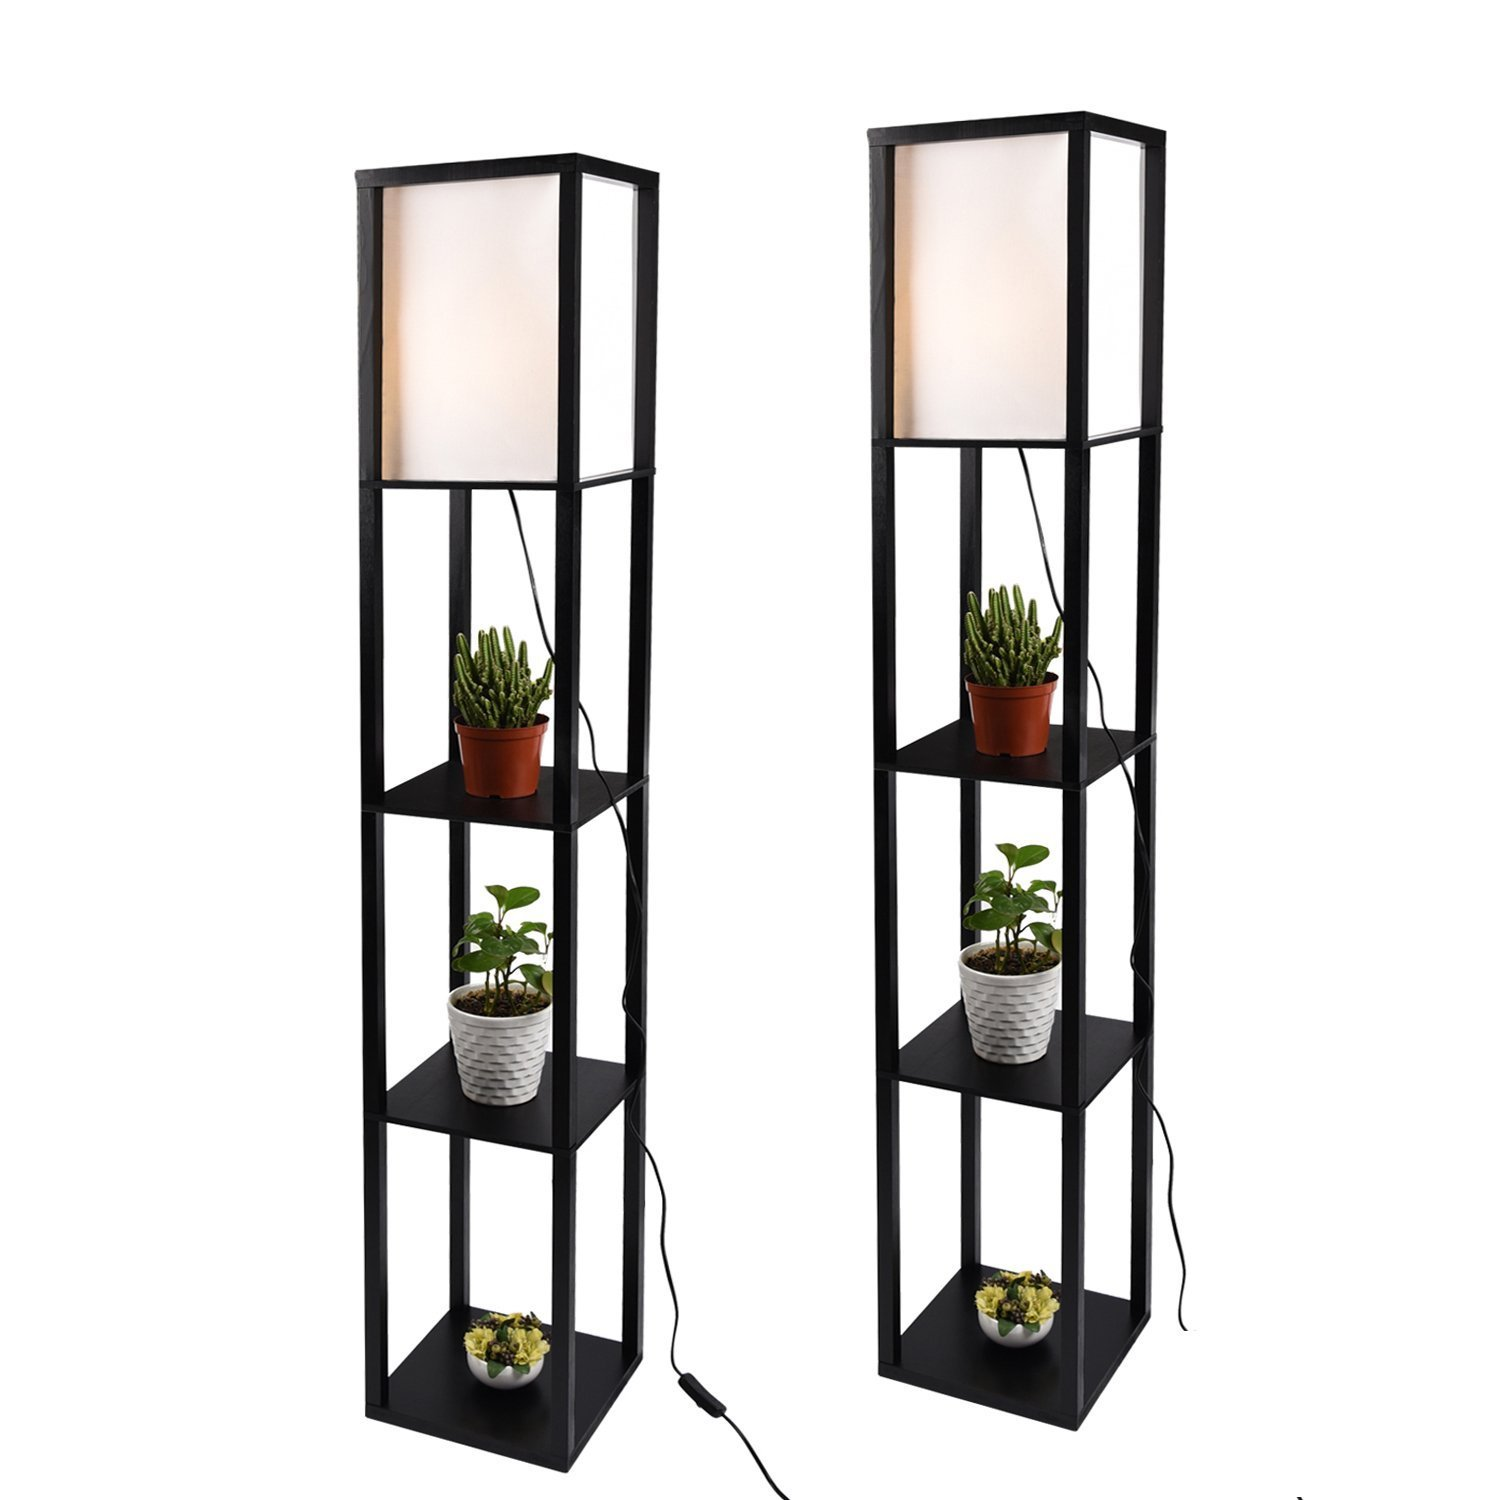 Shelf Floor Lamp with Linen Shade, UL Listed, Wooden Frame, 63 Inch Height, Switch on/Off, Etagere Organizer Shelf,Set of 2 Black